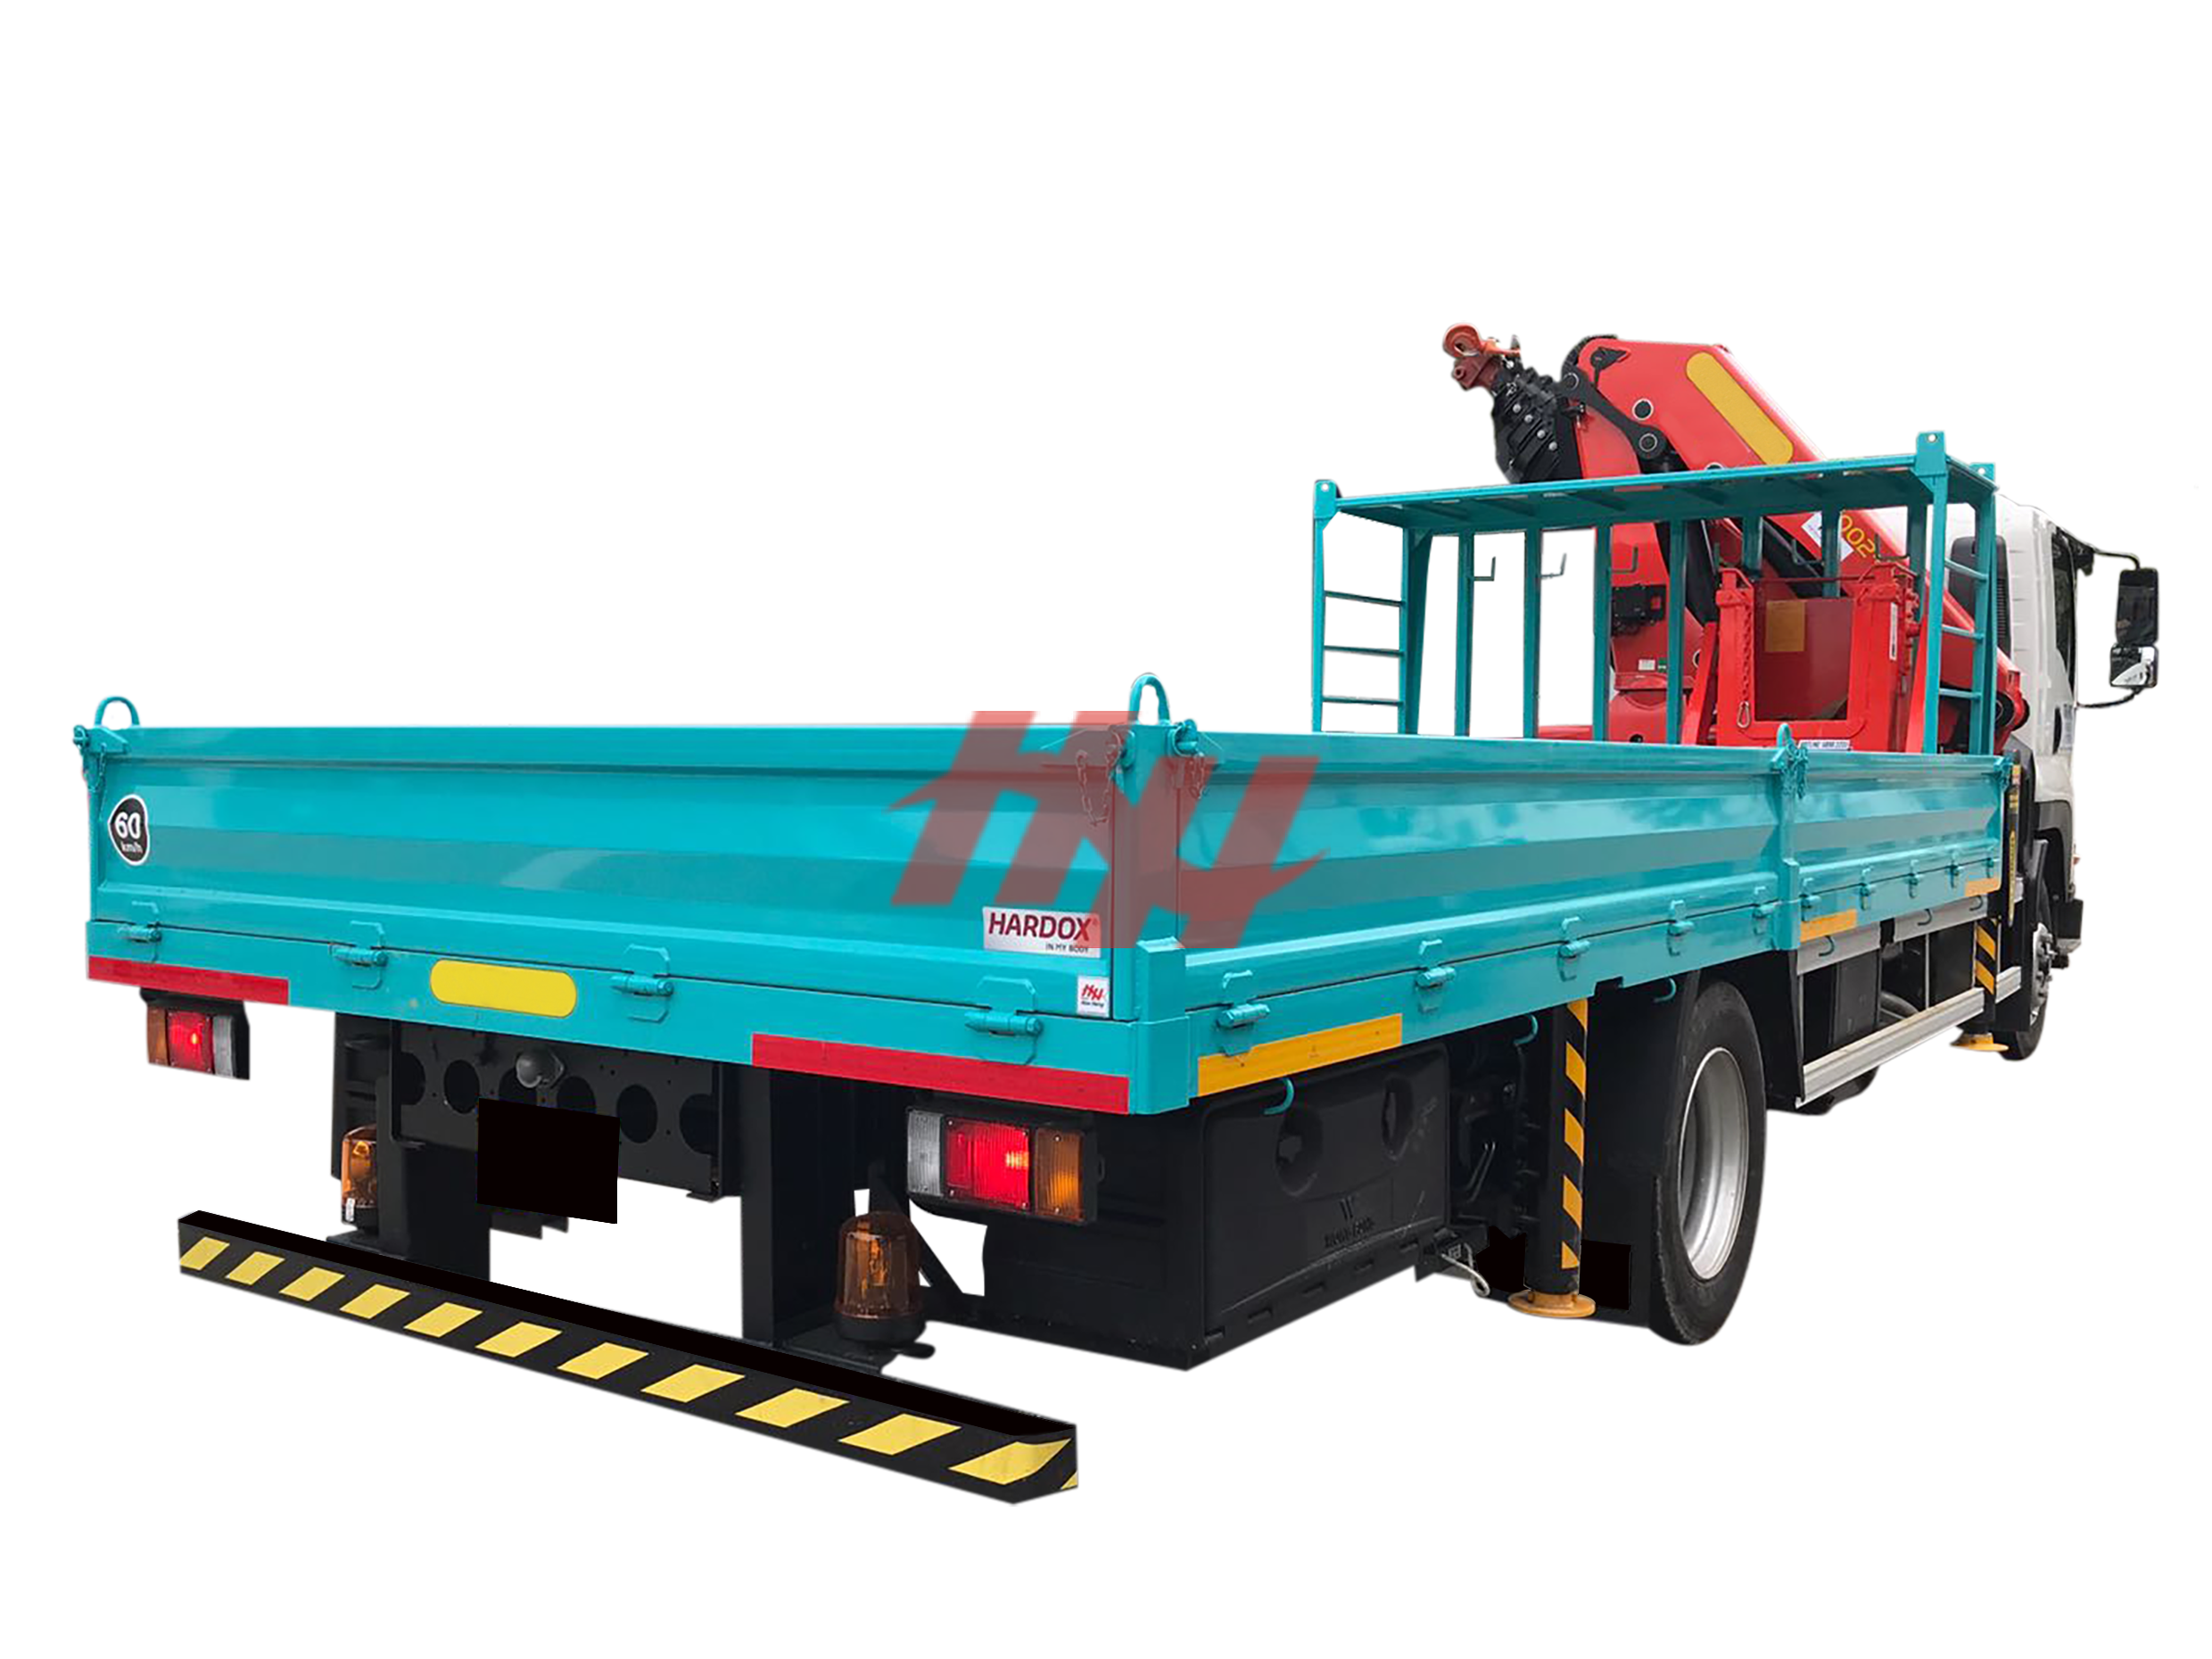 Hardox steel panel body with rear bumper